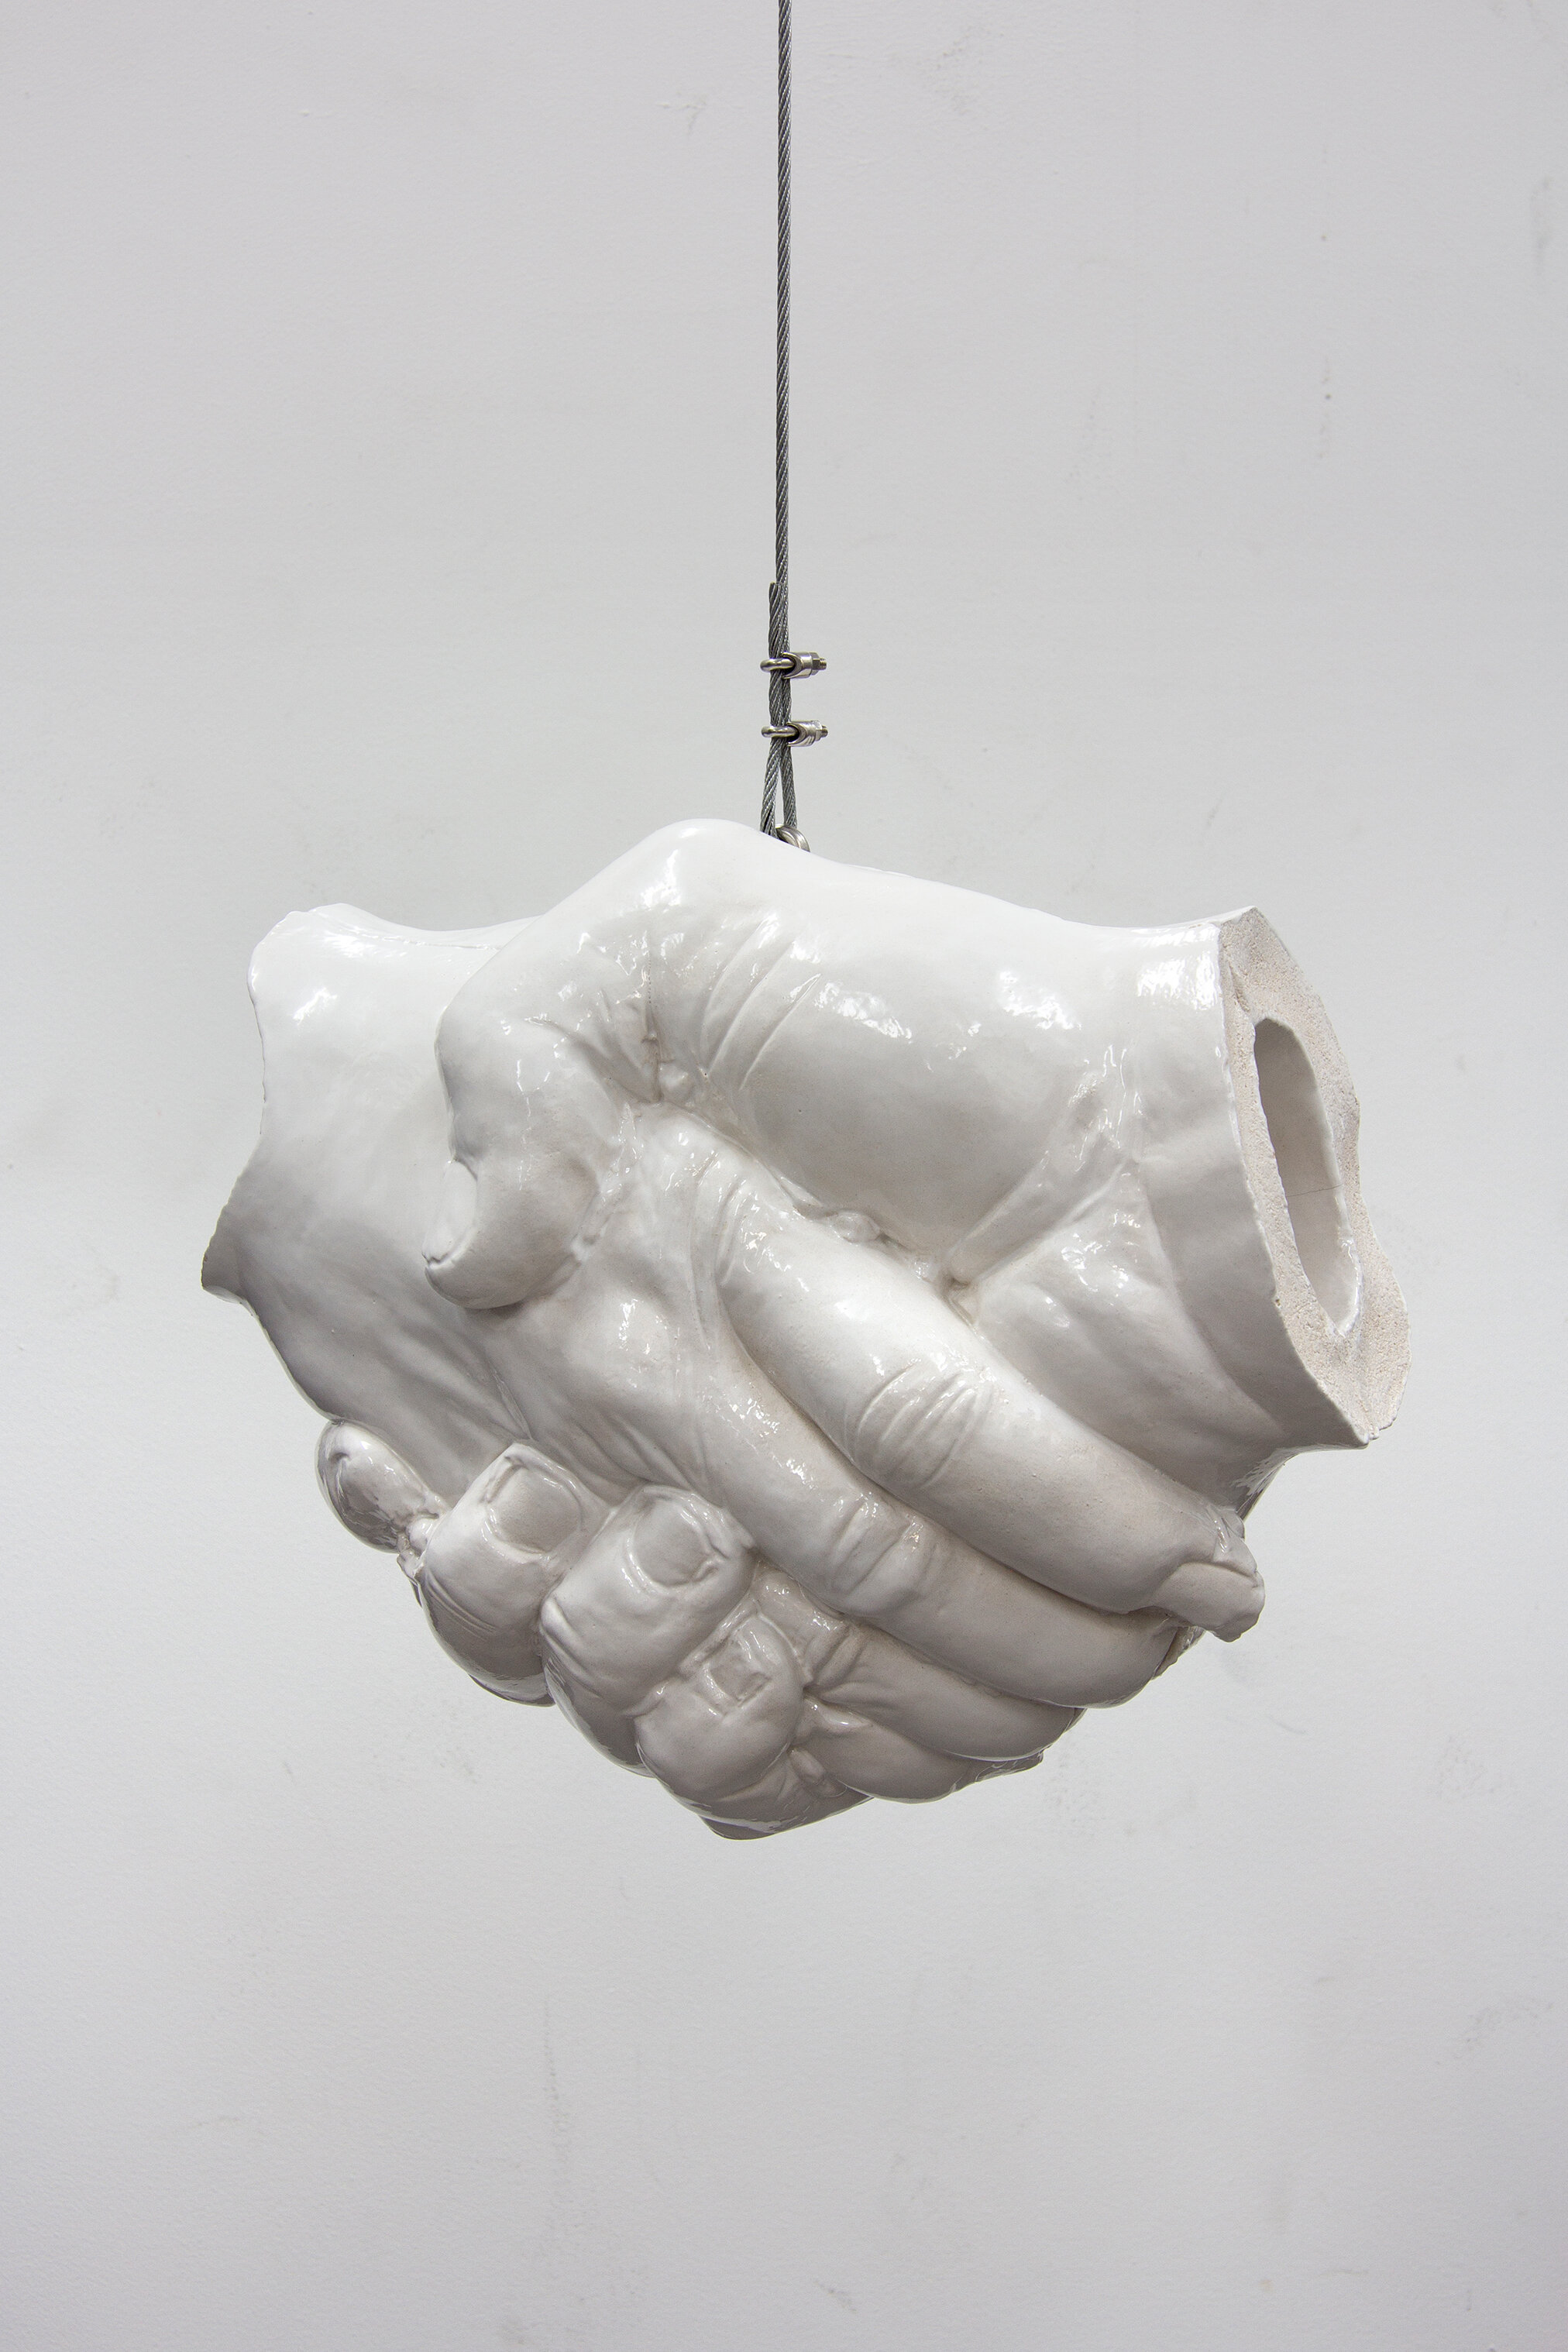 Handschlag , glazed ceramic, 18.89 x 15.75 x 11 inches, 2010